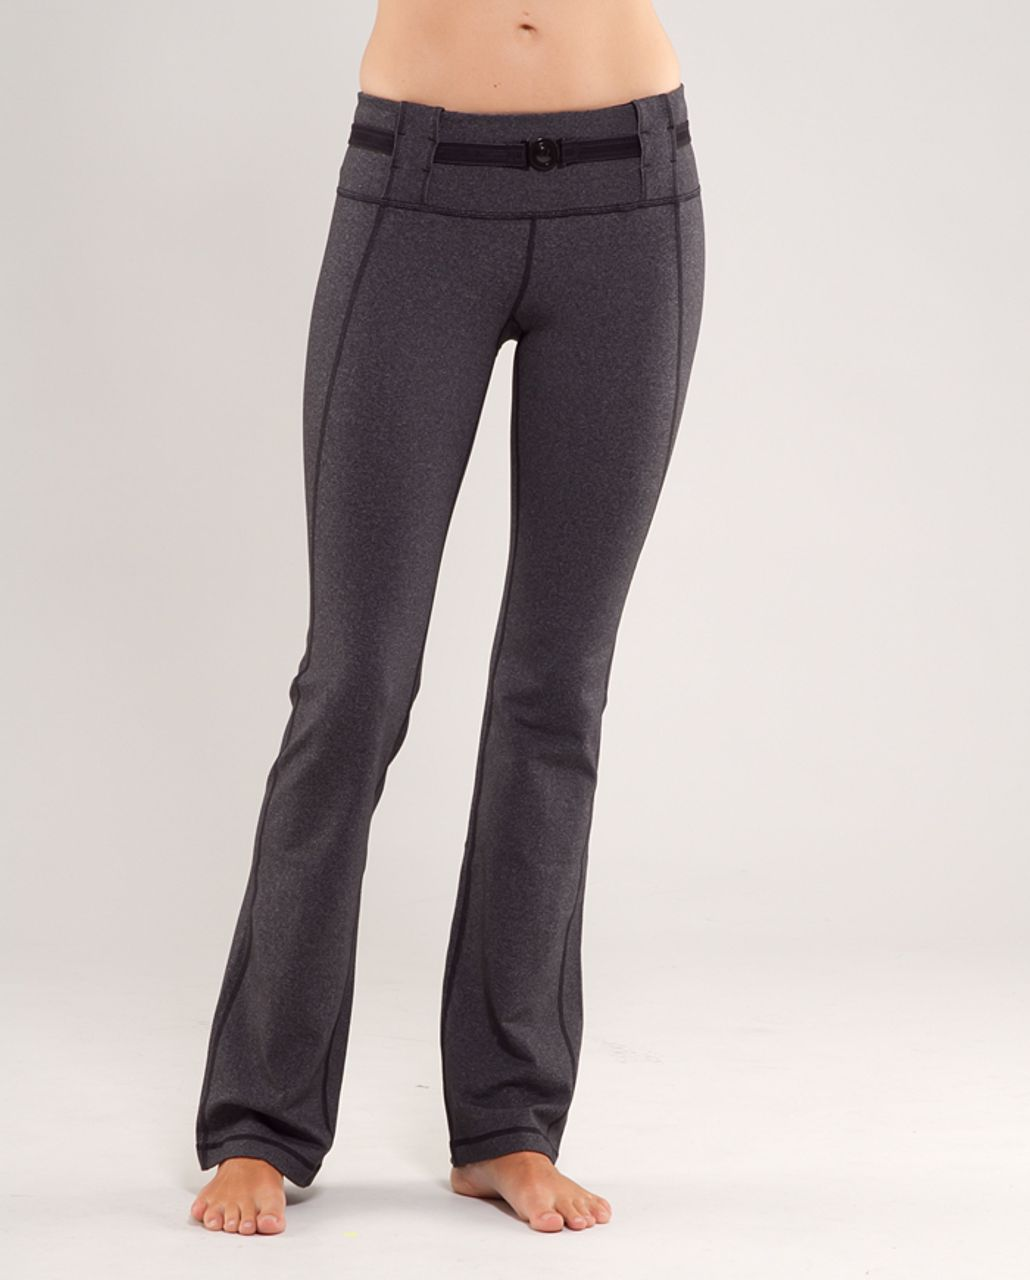 Lululemon Appreciation Pant - Heathered Black /  Black Stripes Galore